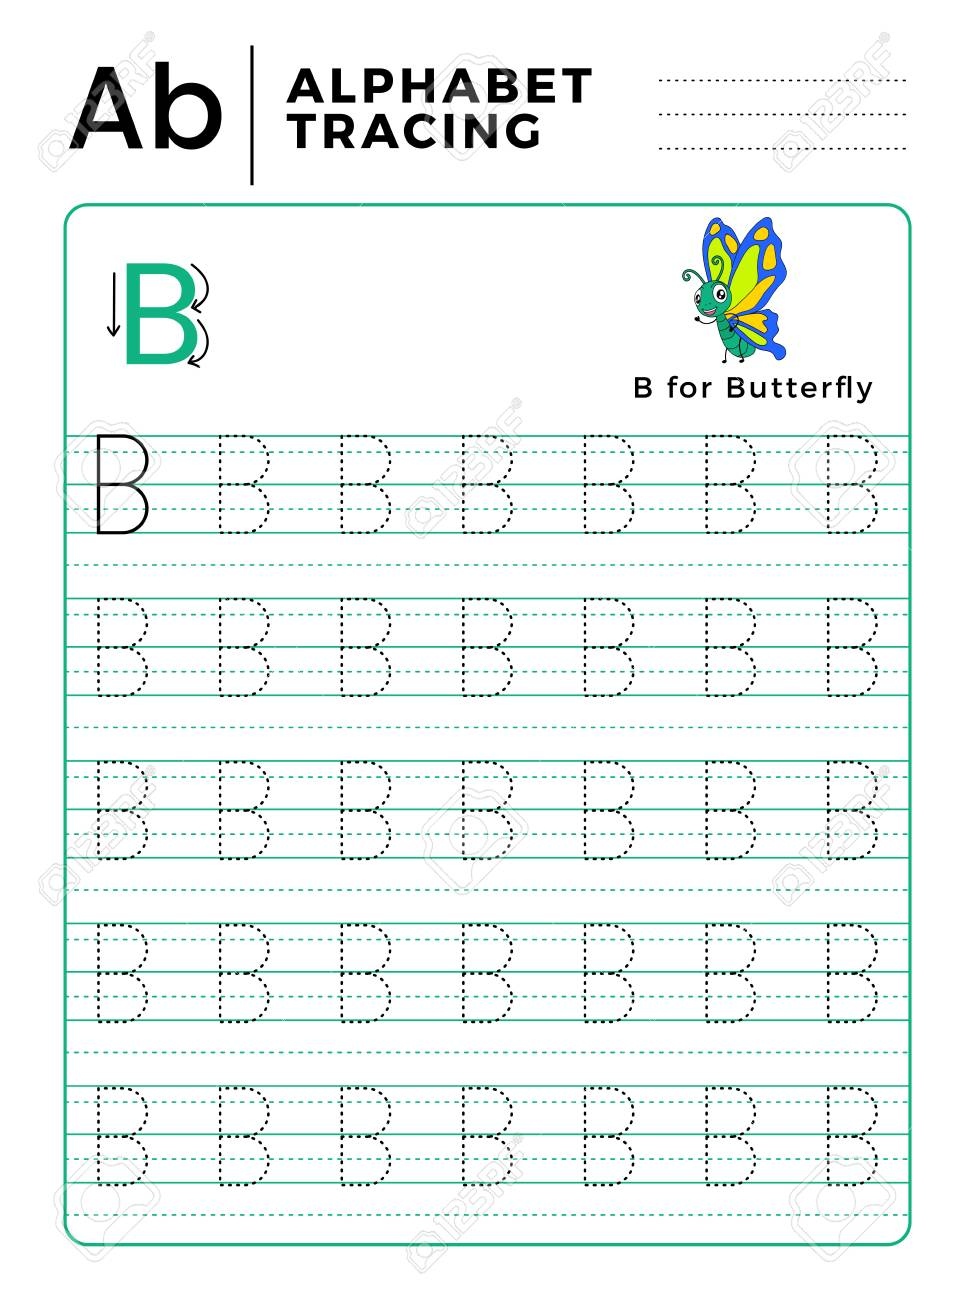 Letter B Alphabet Tracing Book With Example And Funny Butterfly..